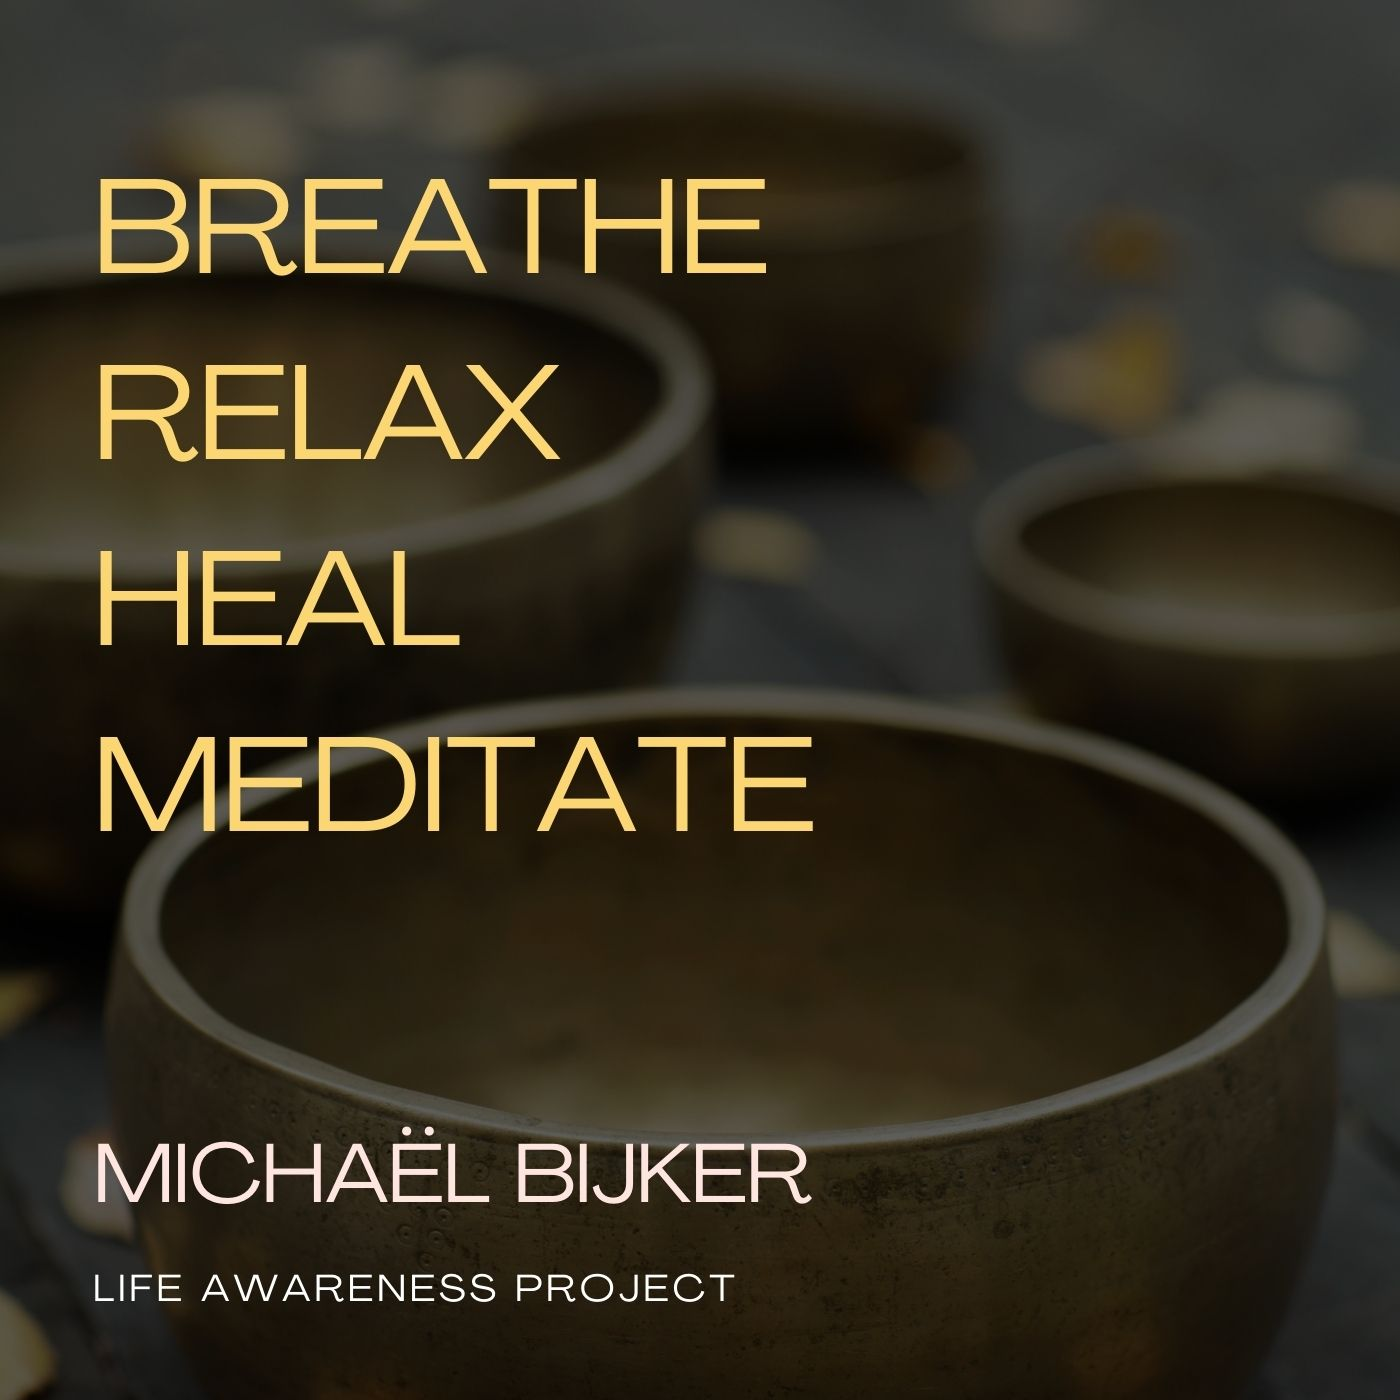 Breathe, relax, heal, meditate words on four bowls